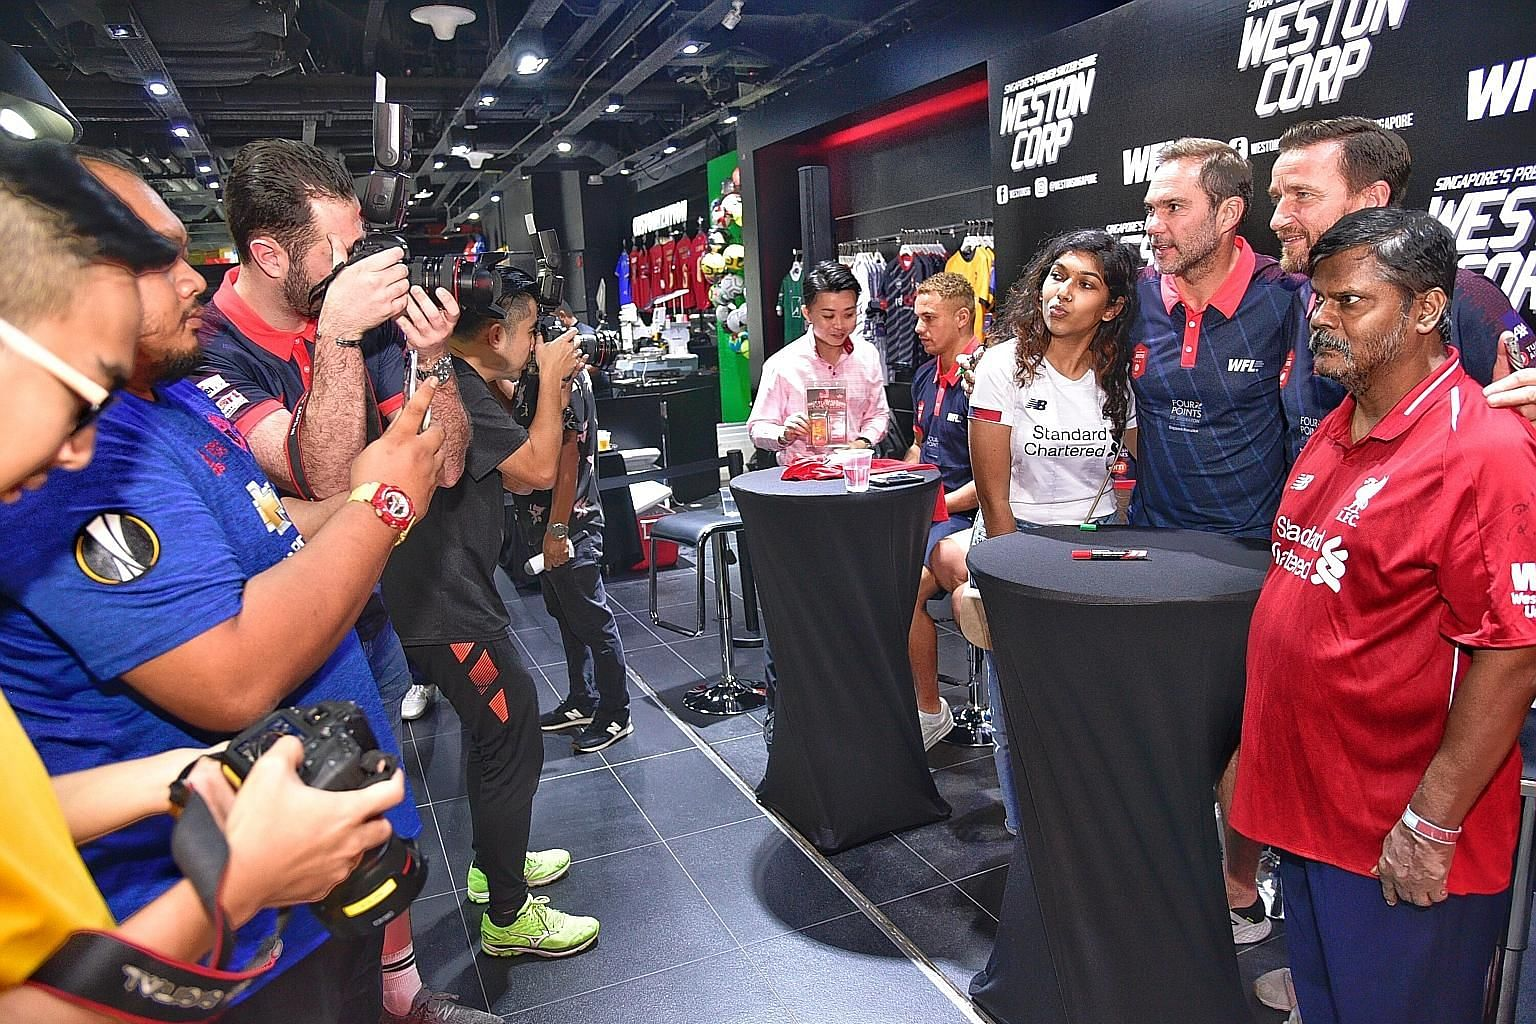 Marketing executive Rajeswari Anbalagan, 23, and her father, retiree K.R. Anbalagan, 57, flanking former Liverpool players Jason McAteer and Vladimir Smicer during the meet and greet with fans at sportswear store Weston in Kallang Wave Mall, ahead of